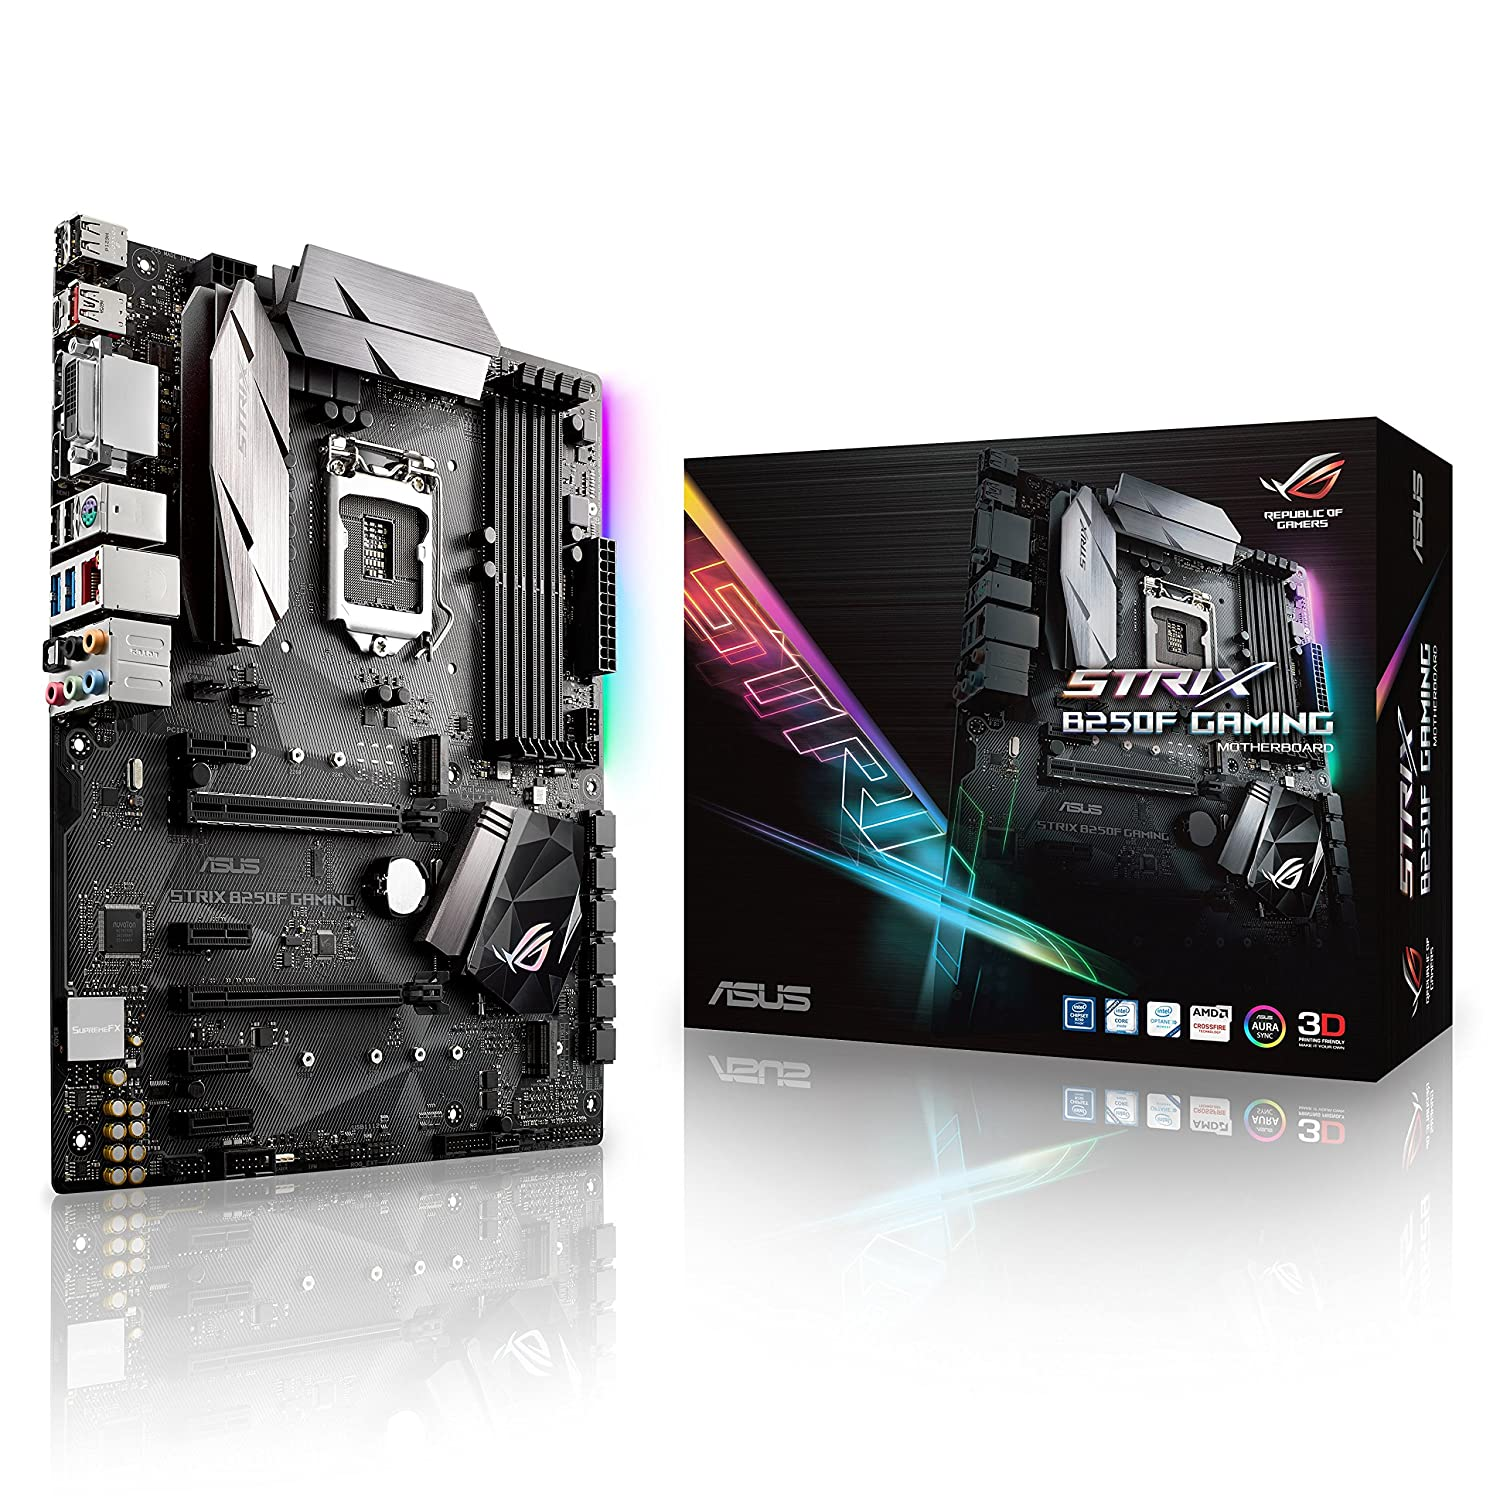 ASUS ROG STRIX B250F GAMING LGA1151 DDR4 DP HDMI DVI M.2 ATX With USB 3.1 Motherboard